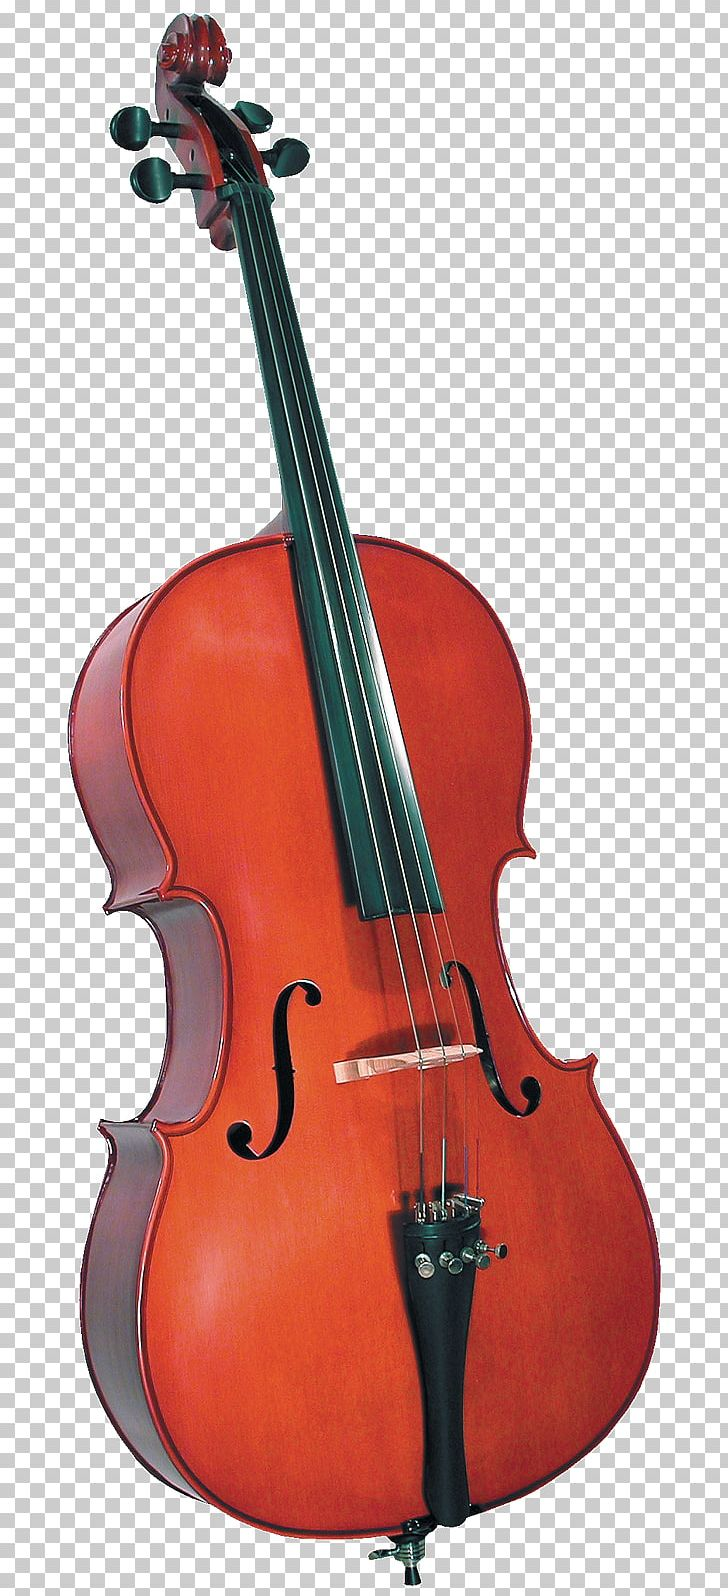 Cremona Cello Double Bass Musical Instruments Png Clipart